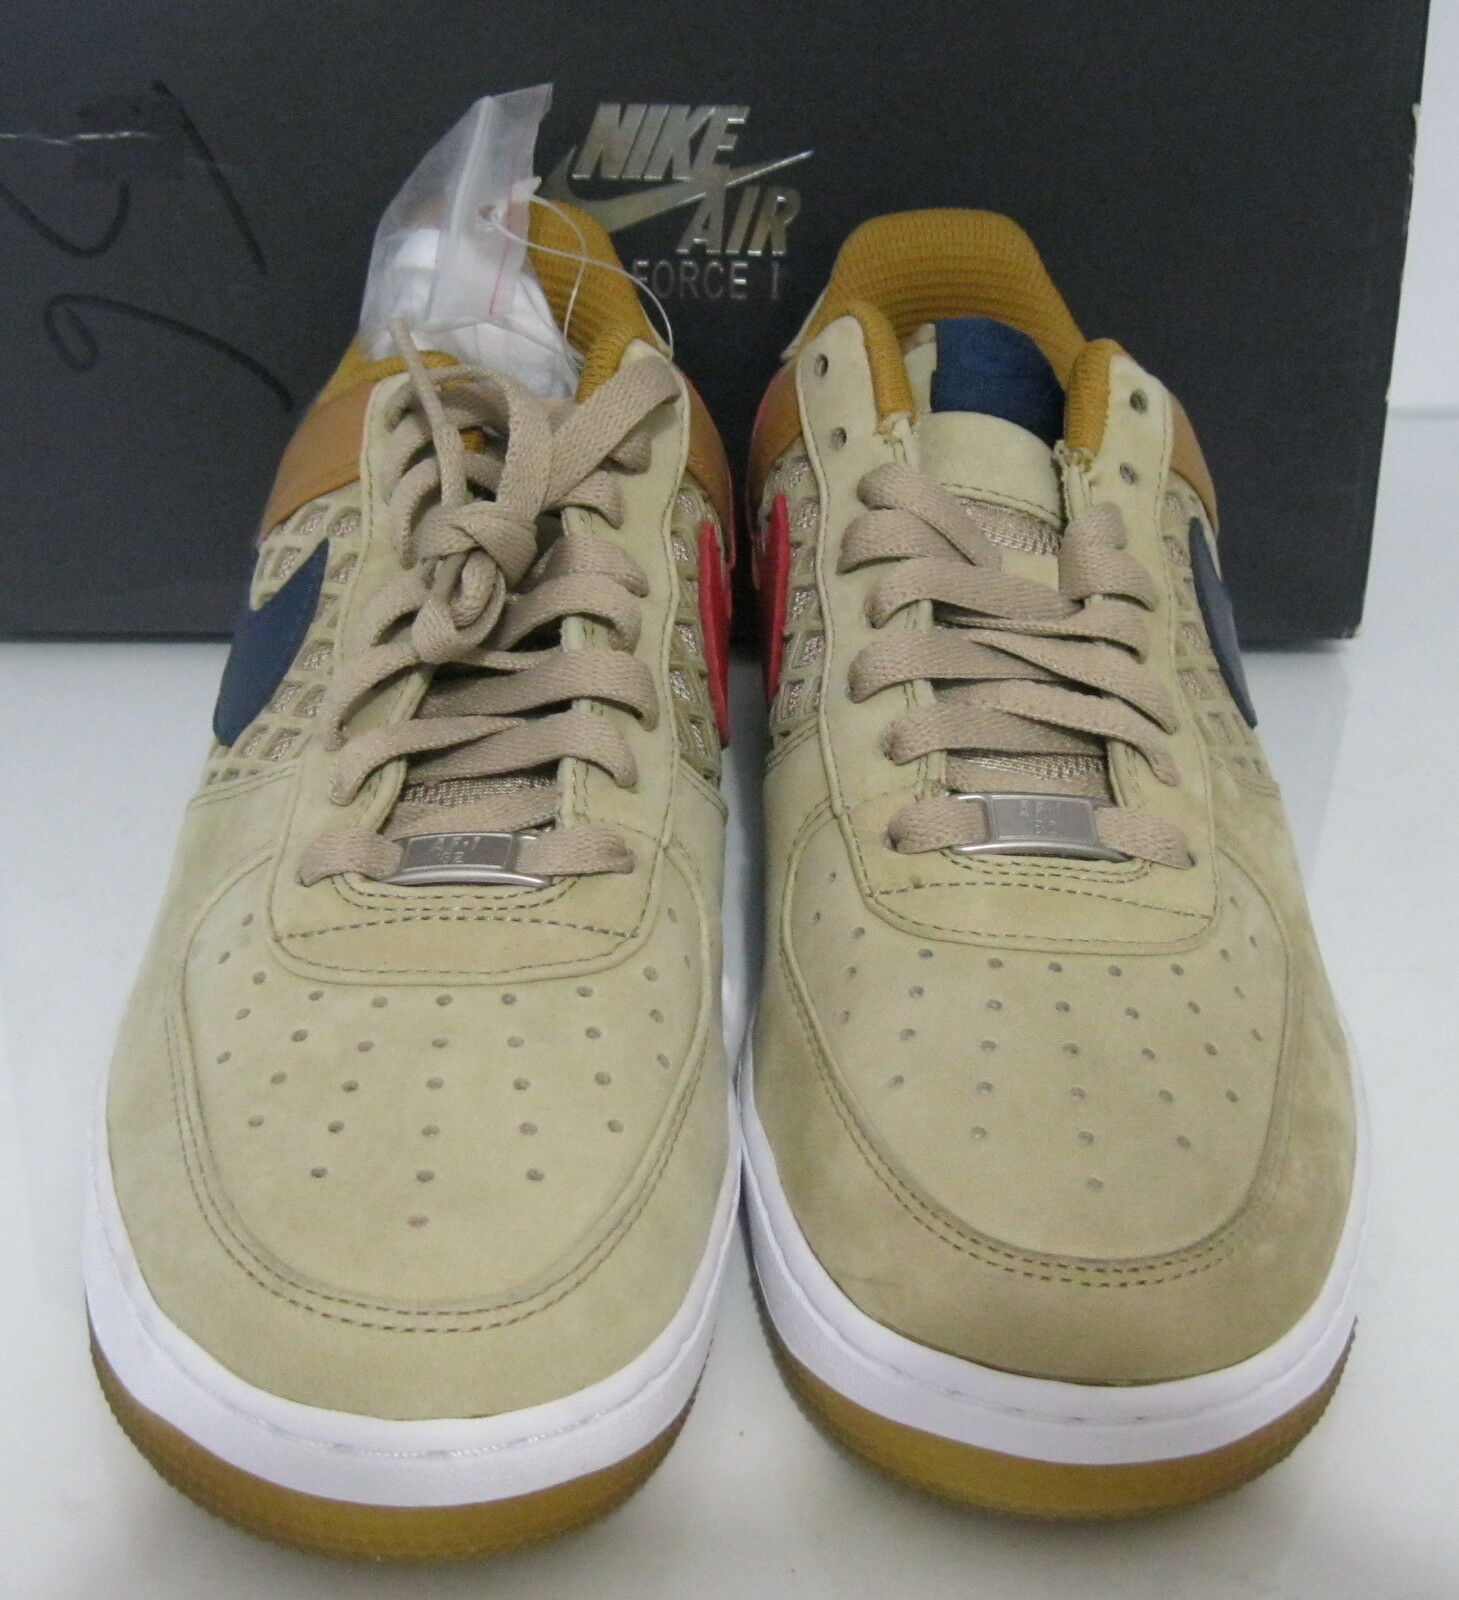 detailed pictures 5fa1c 8ac3b ... Neuf Nike Air Force Force Force 1 318775 241 Baskets Taille 8 f75ca6 ...